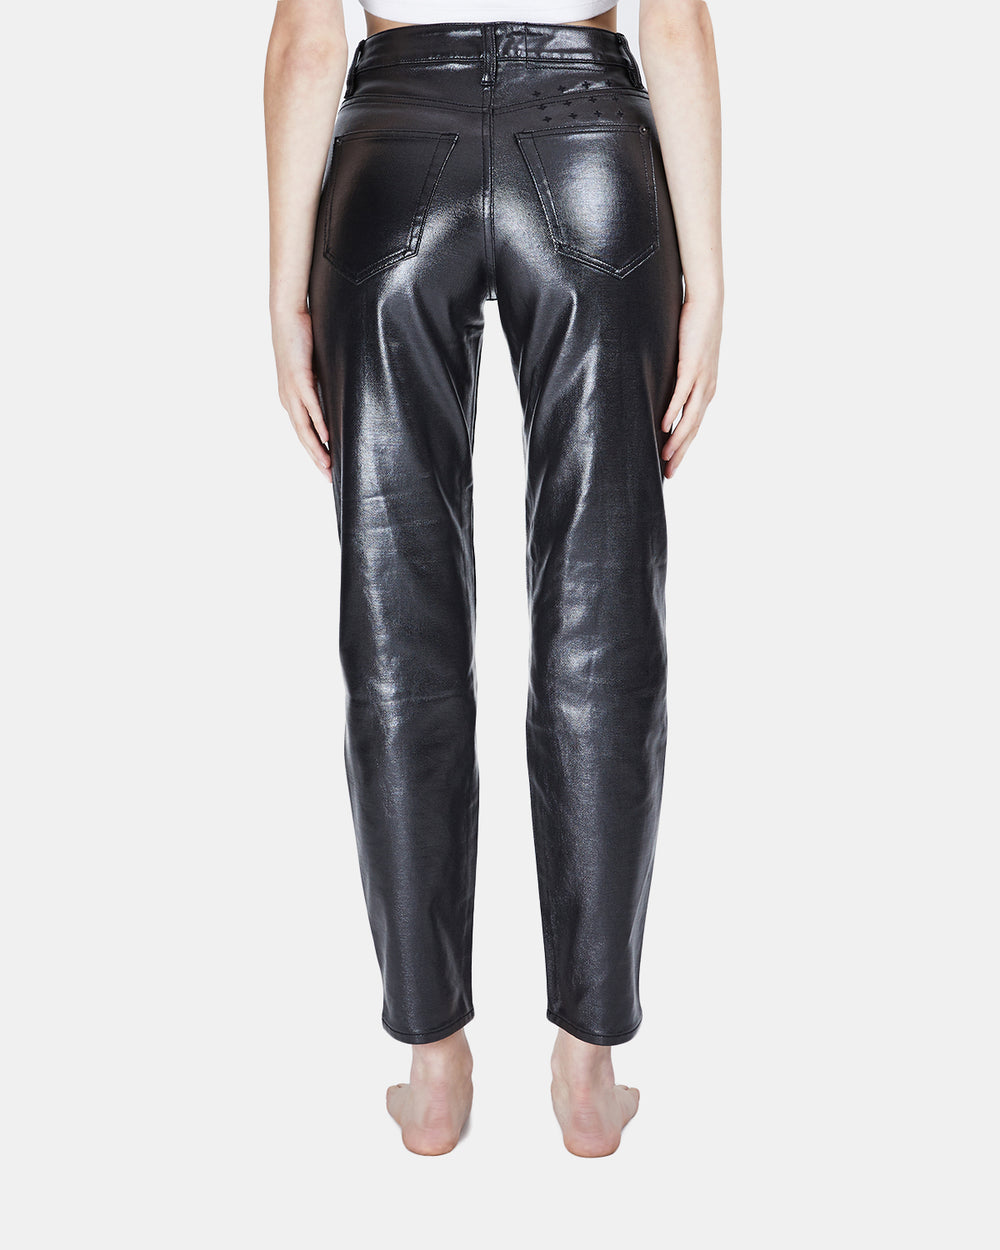 Ksubi - Women's Pointer Jean (Metal Black)